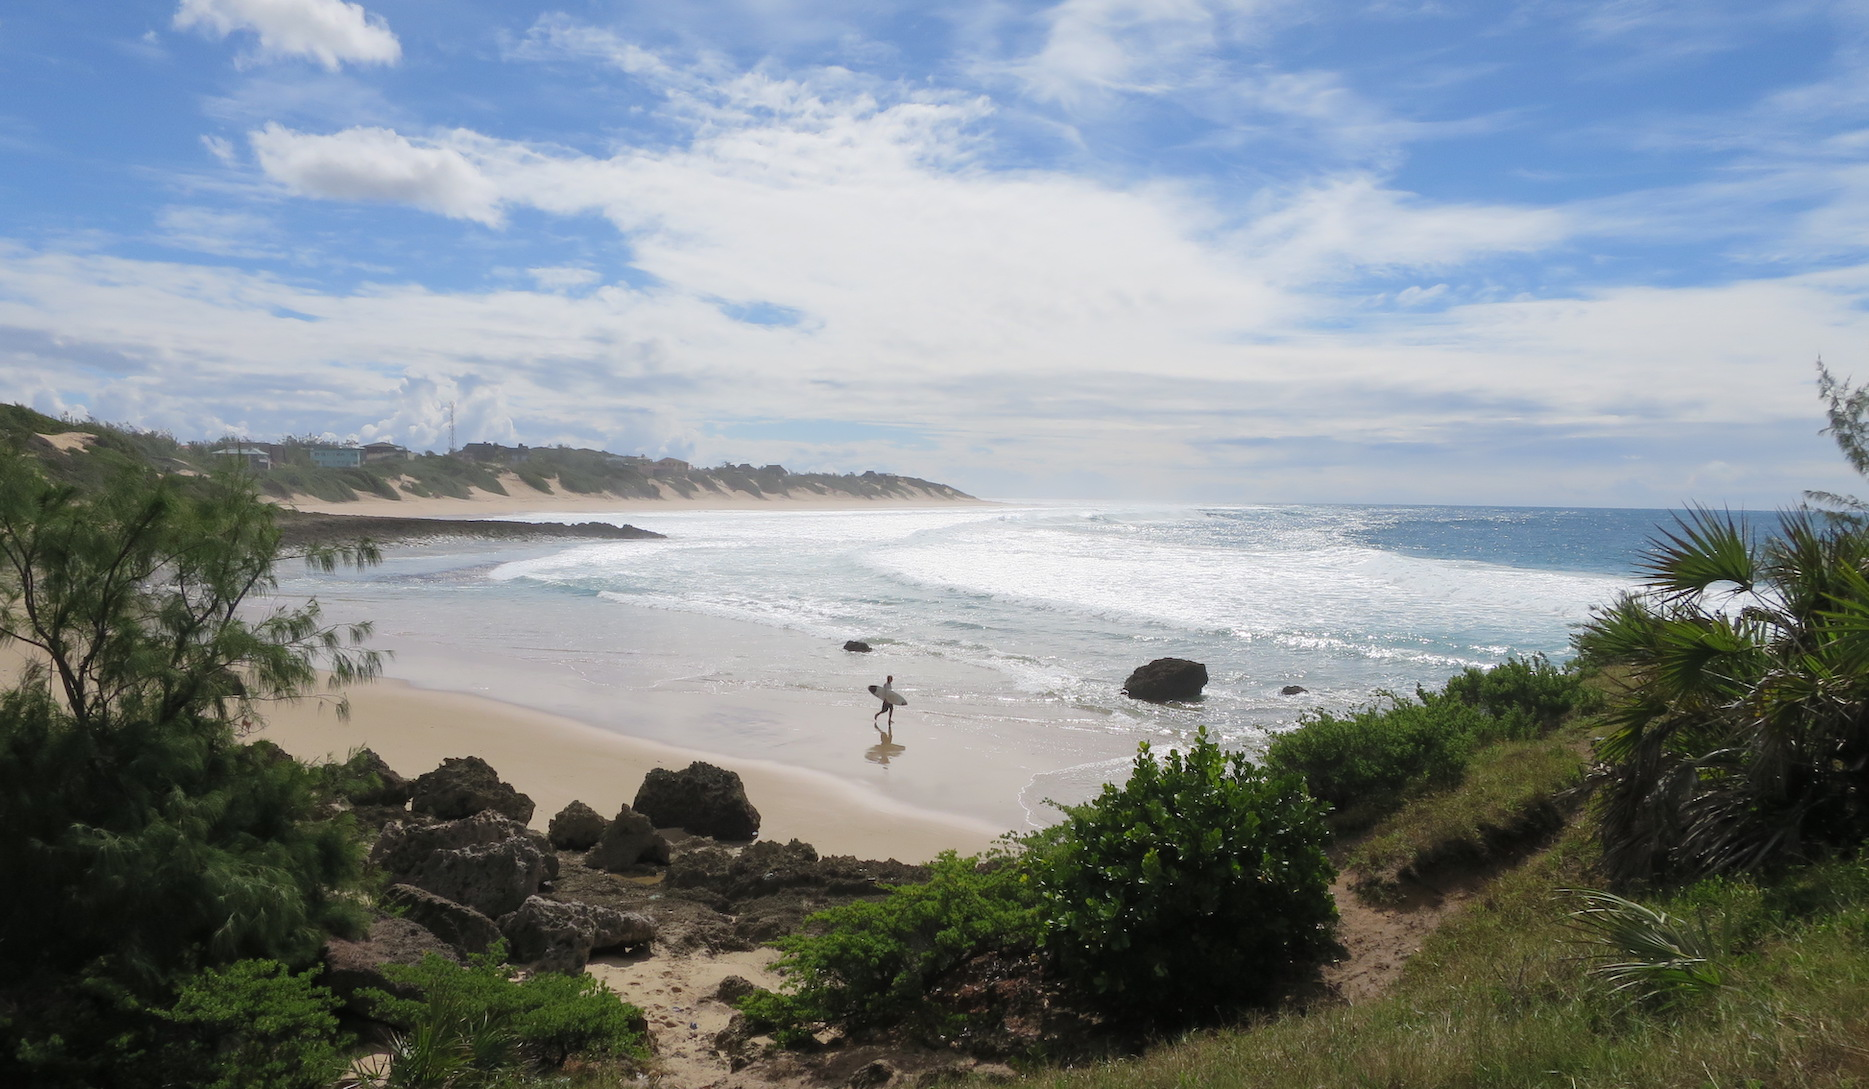 TOFO BEACH - WHEN IS THE BEST TIME TO COME